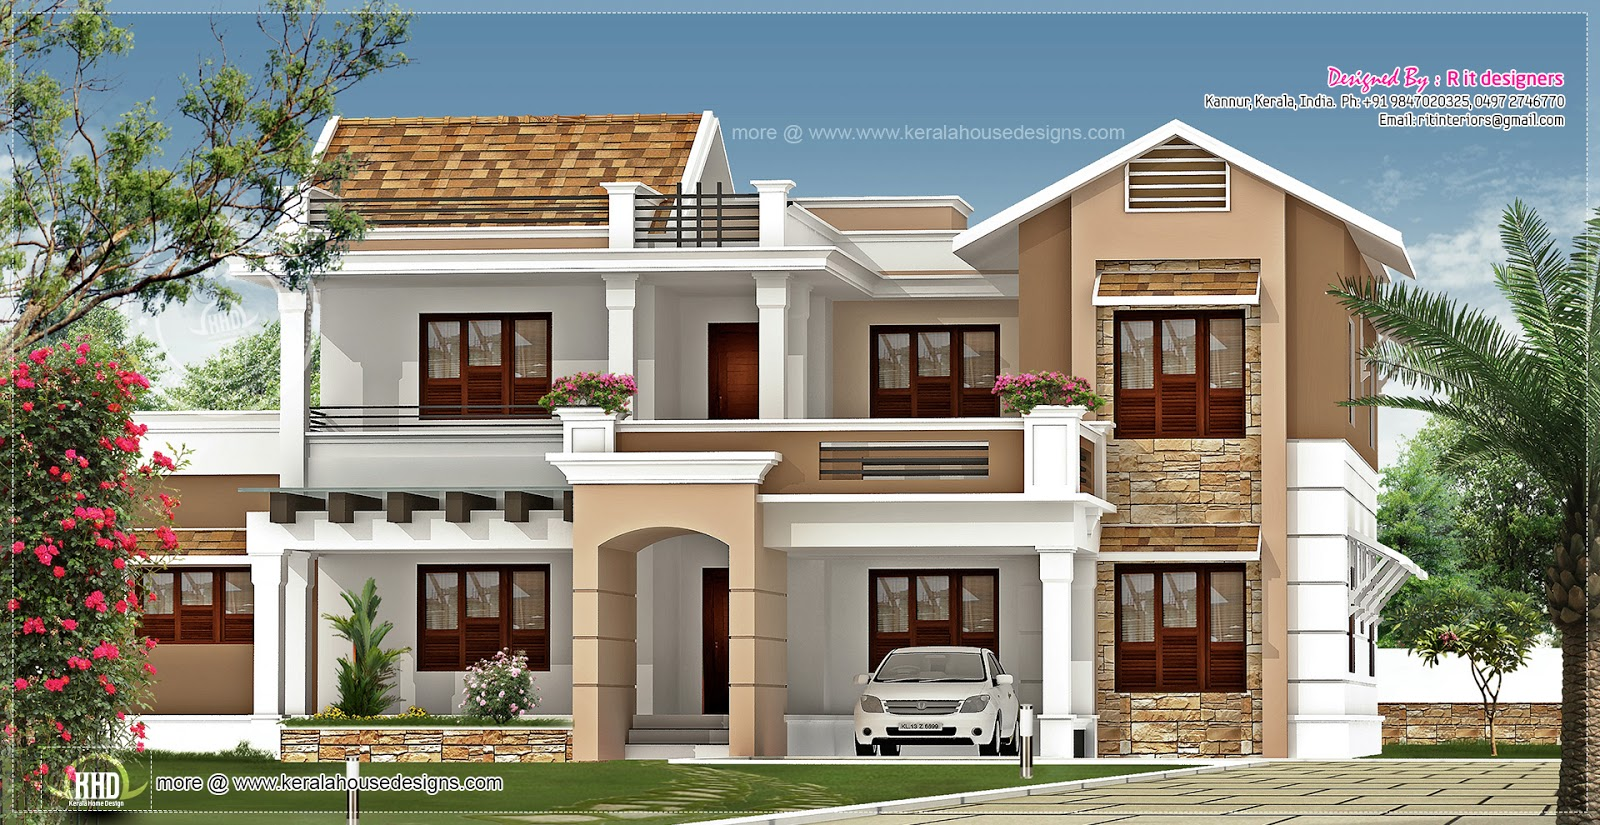 1000 images about house architecture on pinterest for New home design ideas kerala